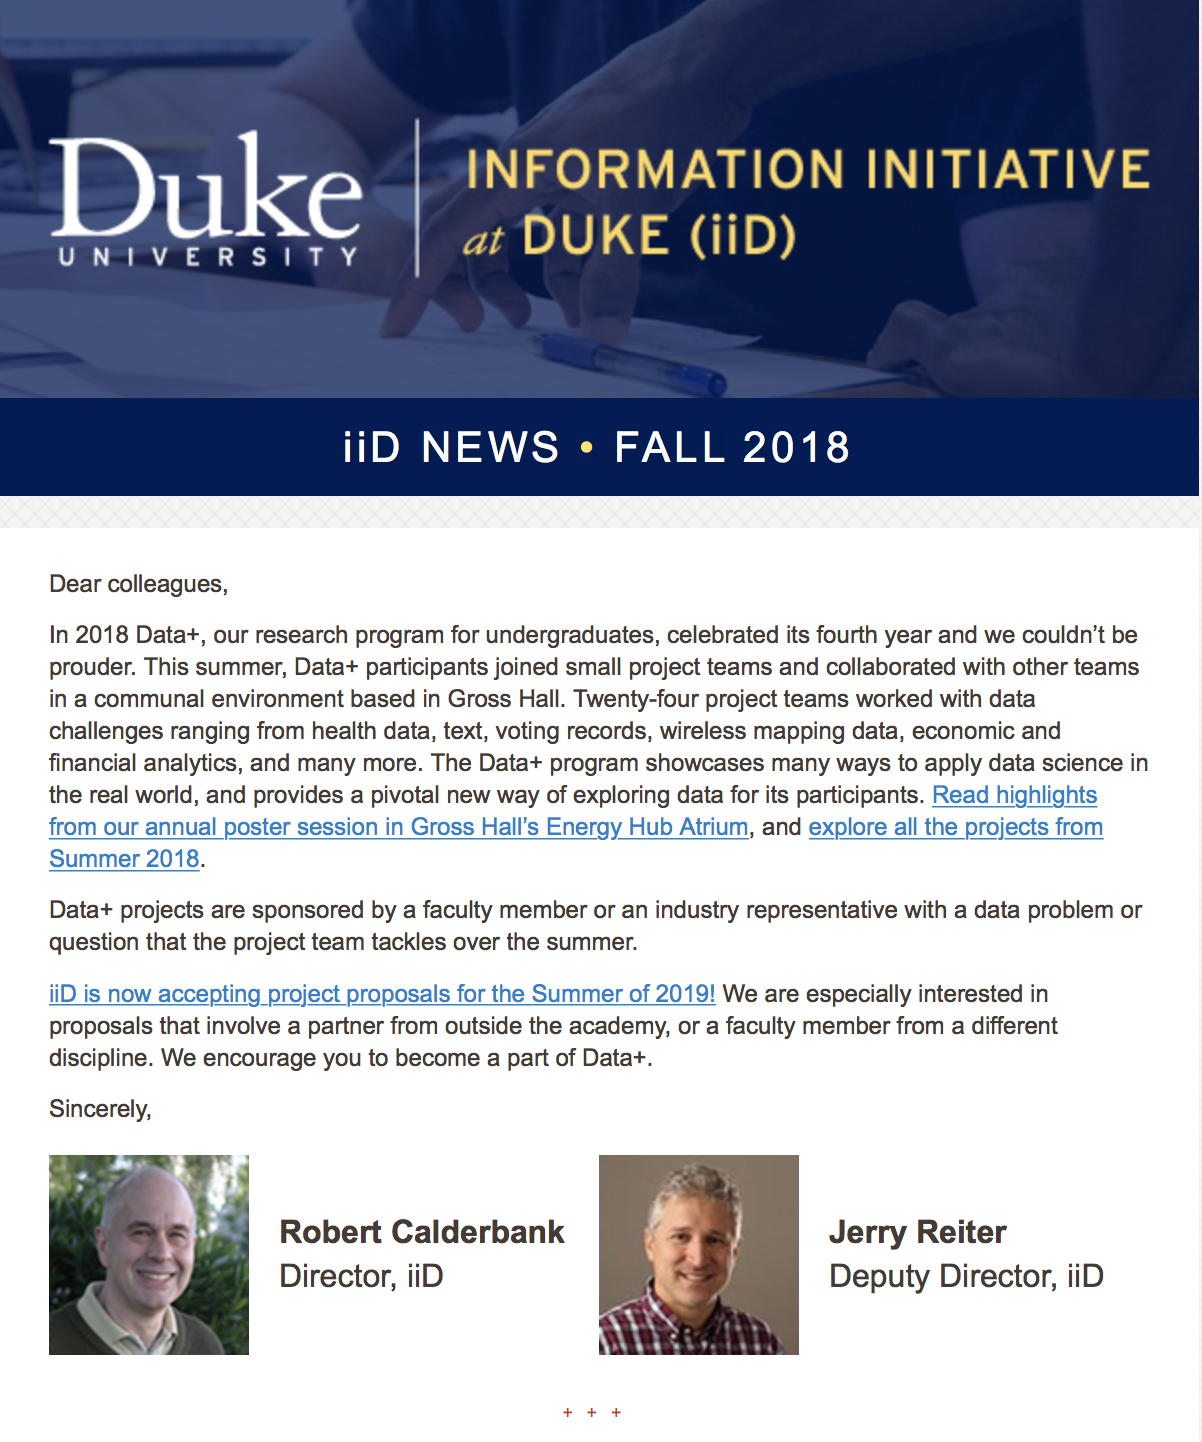 iiD Newsletter Fall 2018